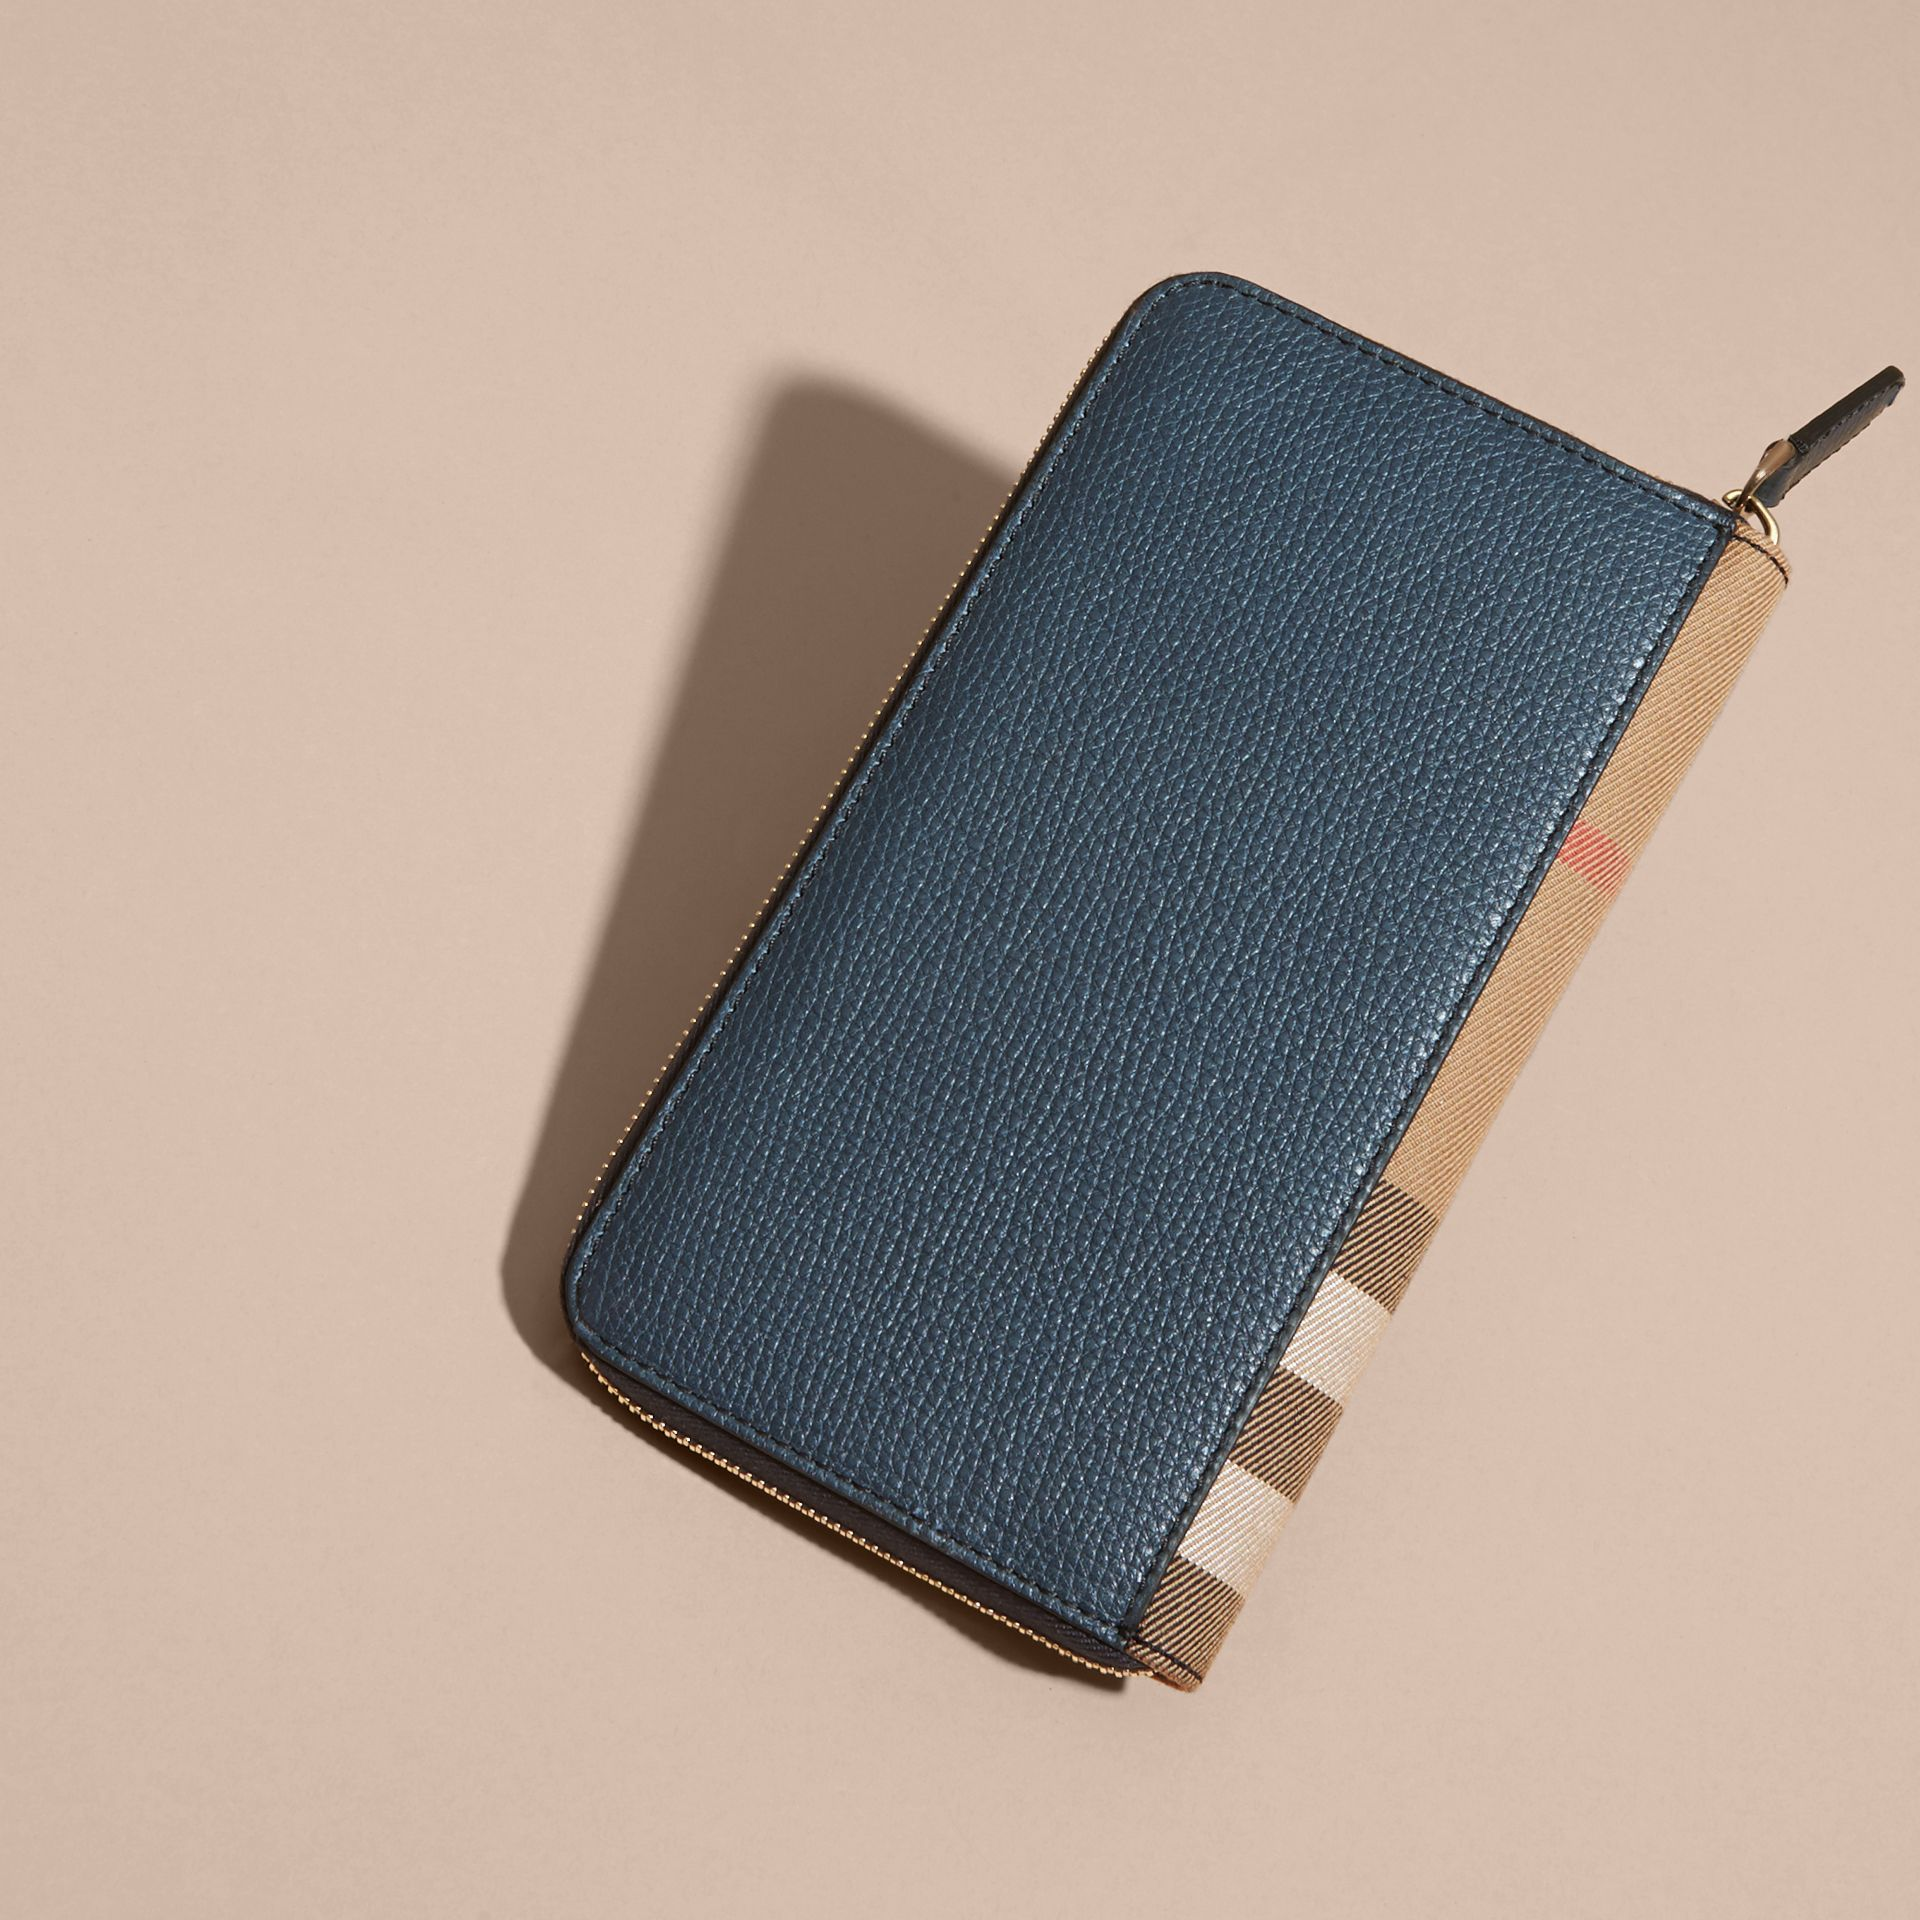 House Check and Grainy Leather Ziparound Wallet Storm Blue - gallery image 3